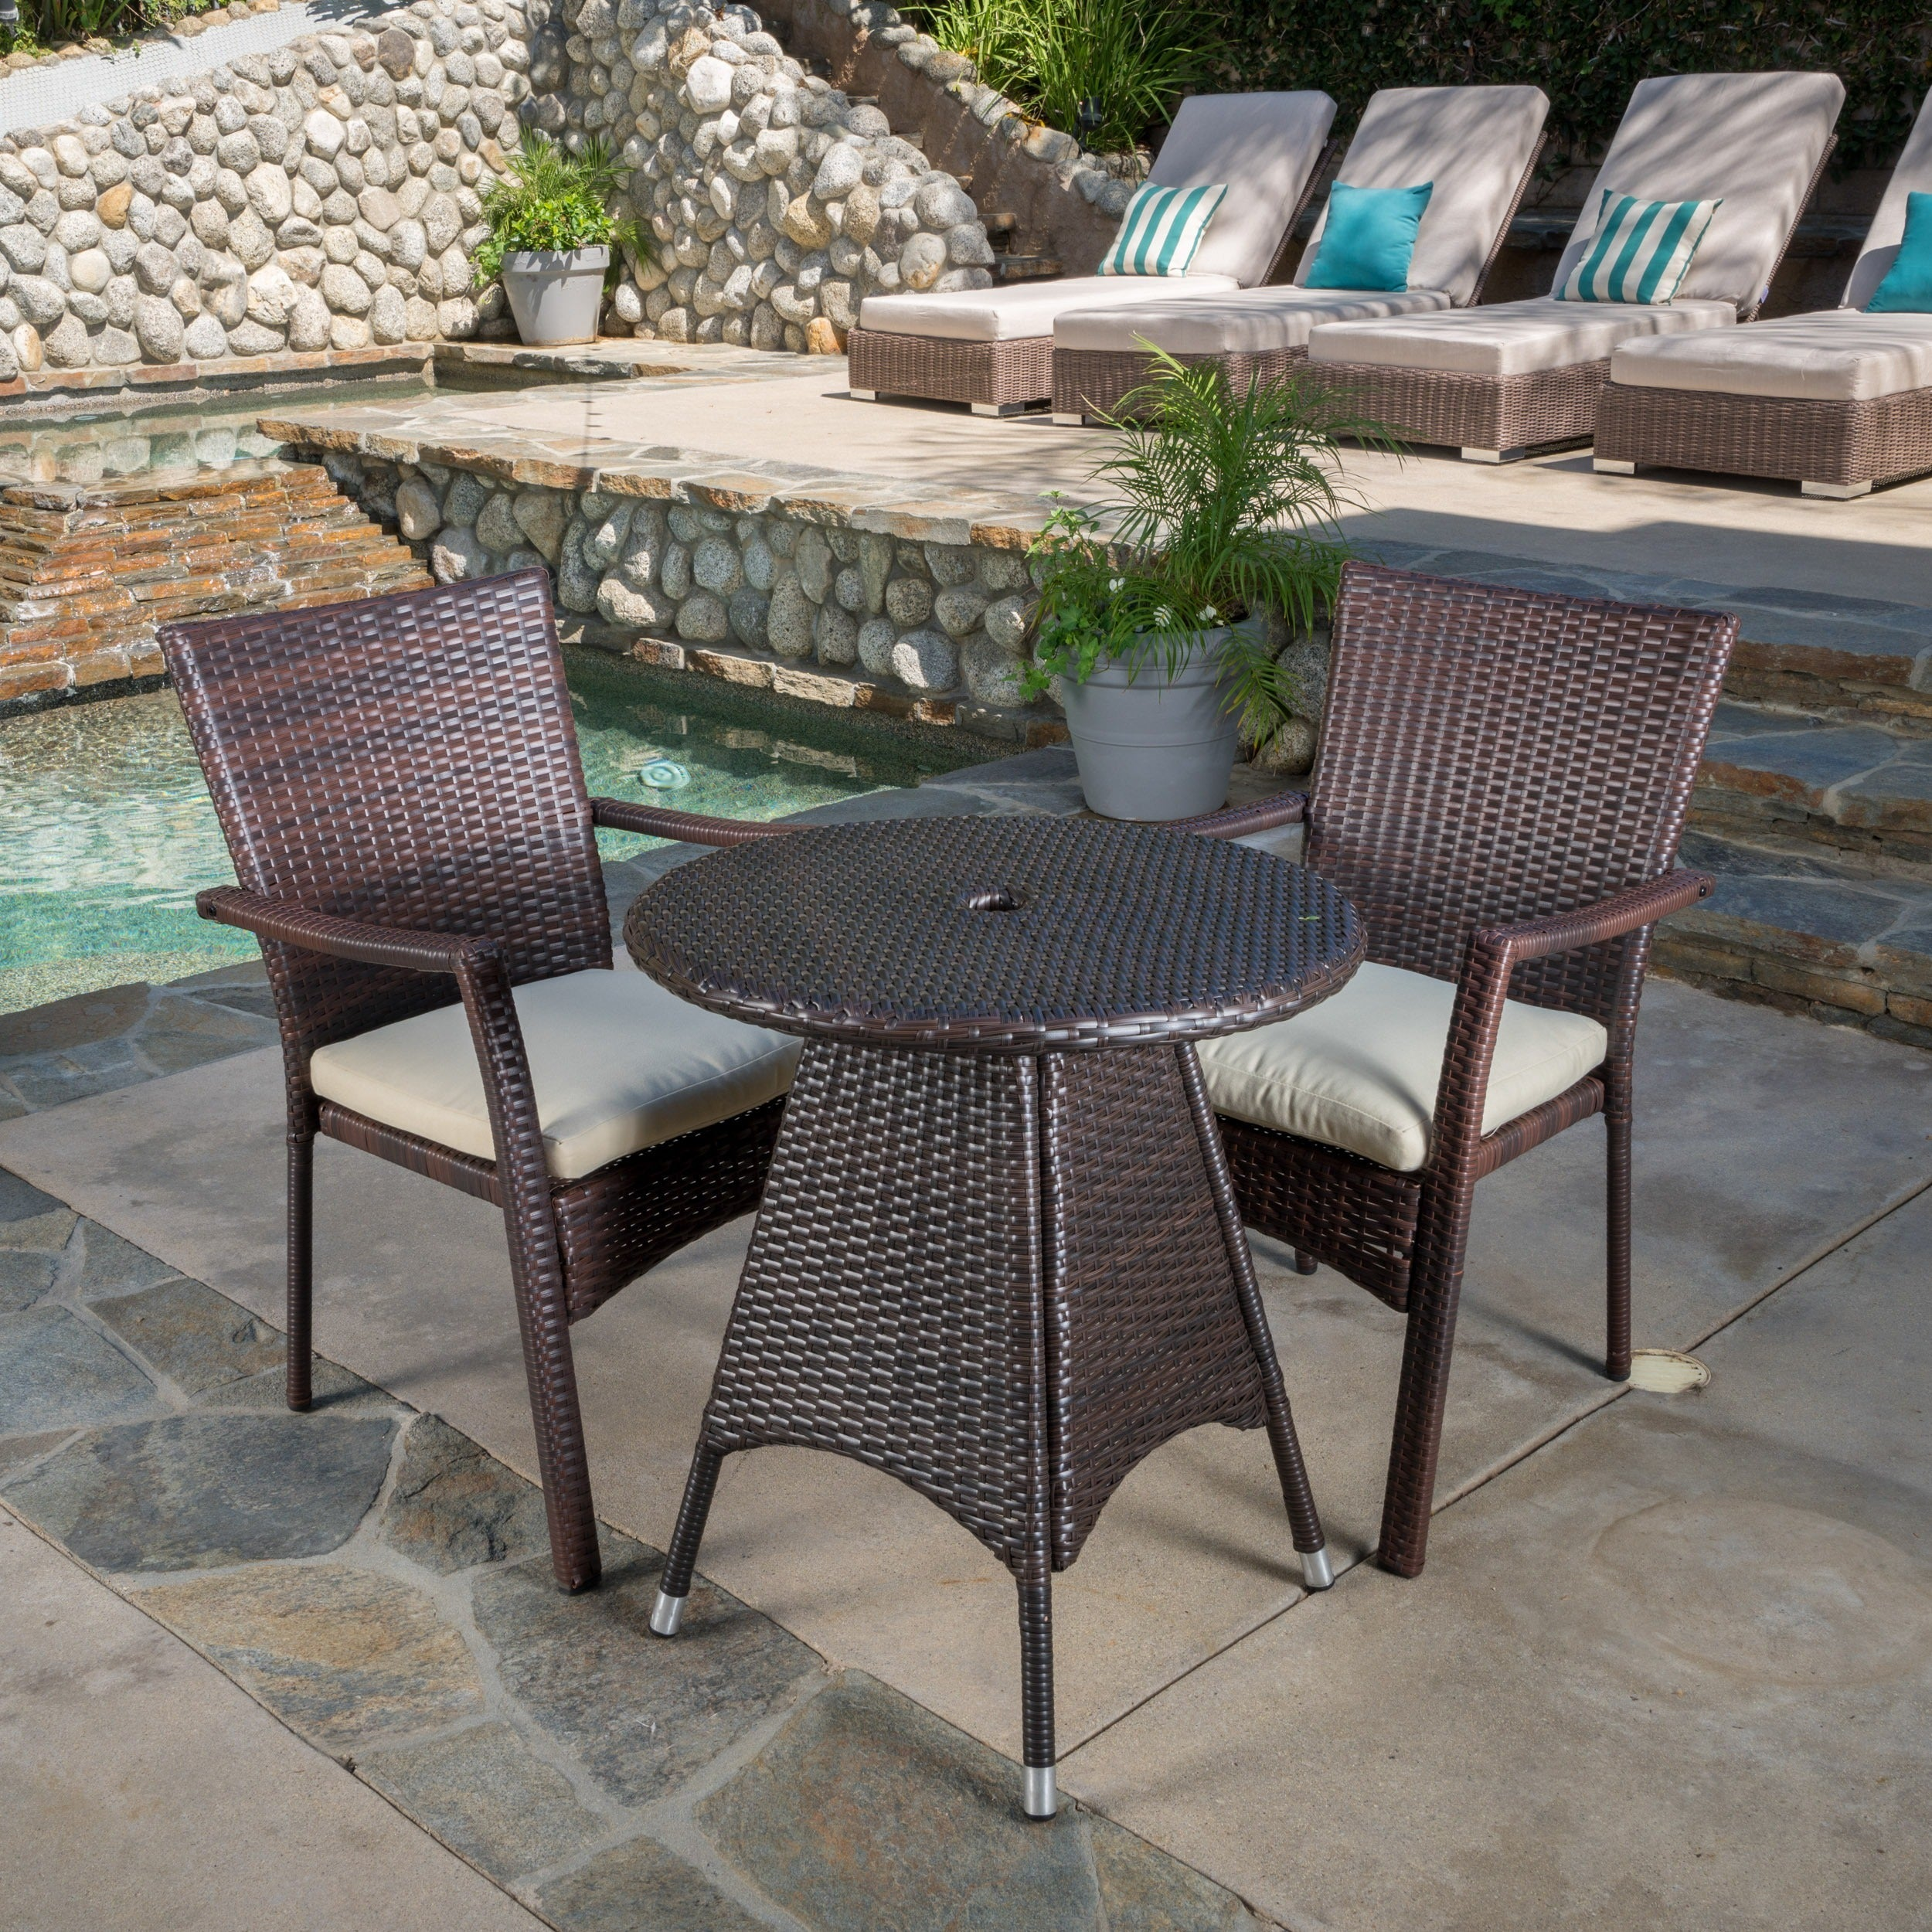 Christopher knight home georgina outdoor 3 piece wicker bistro set with cushions